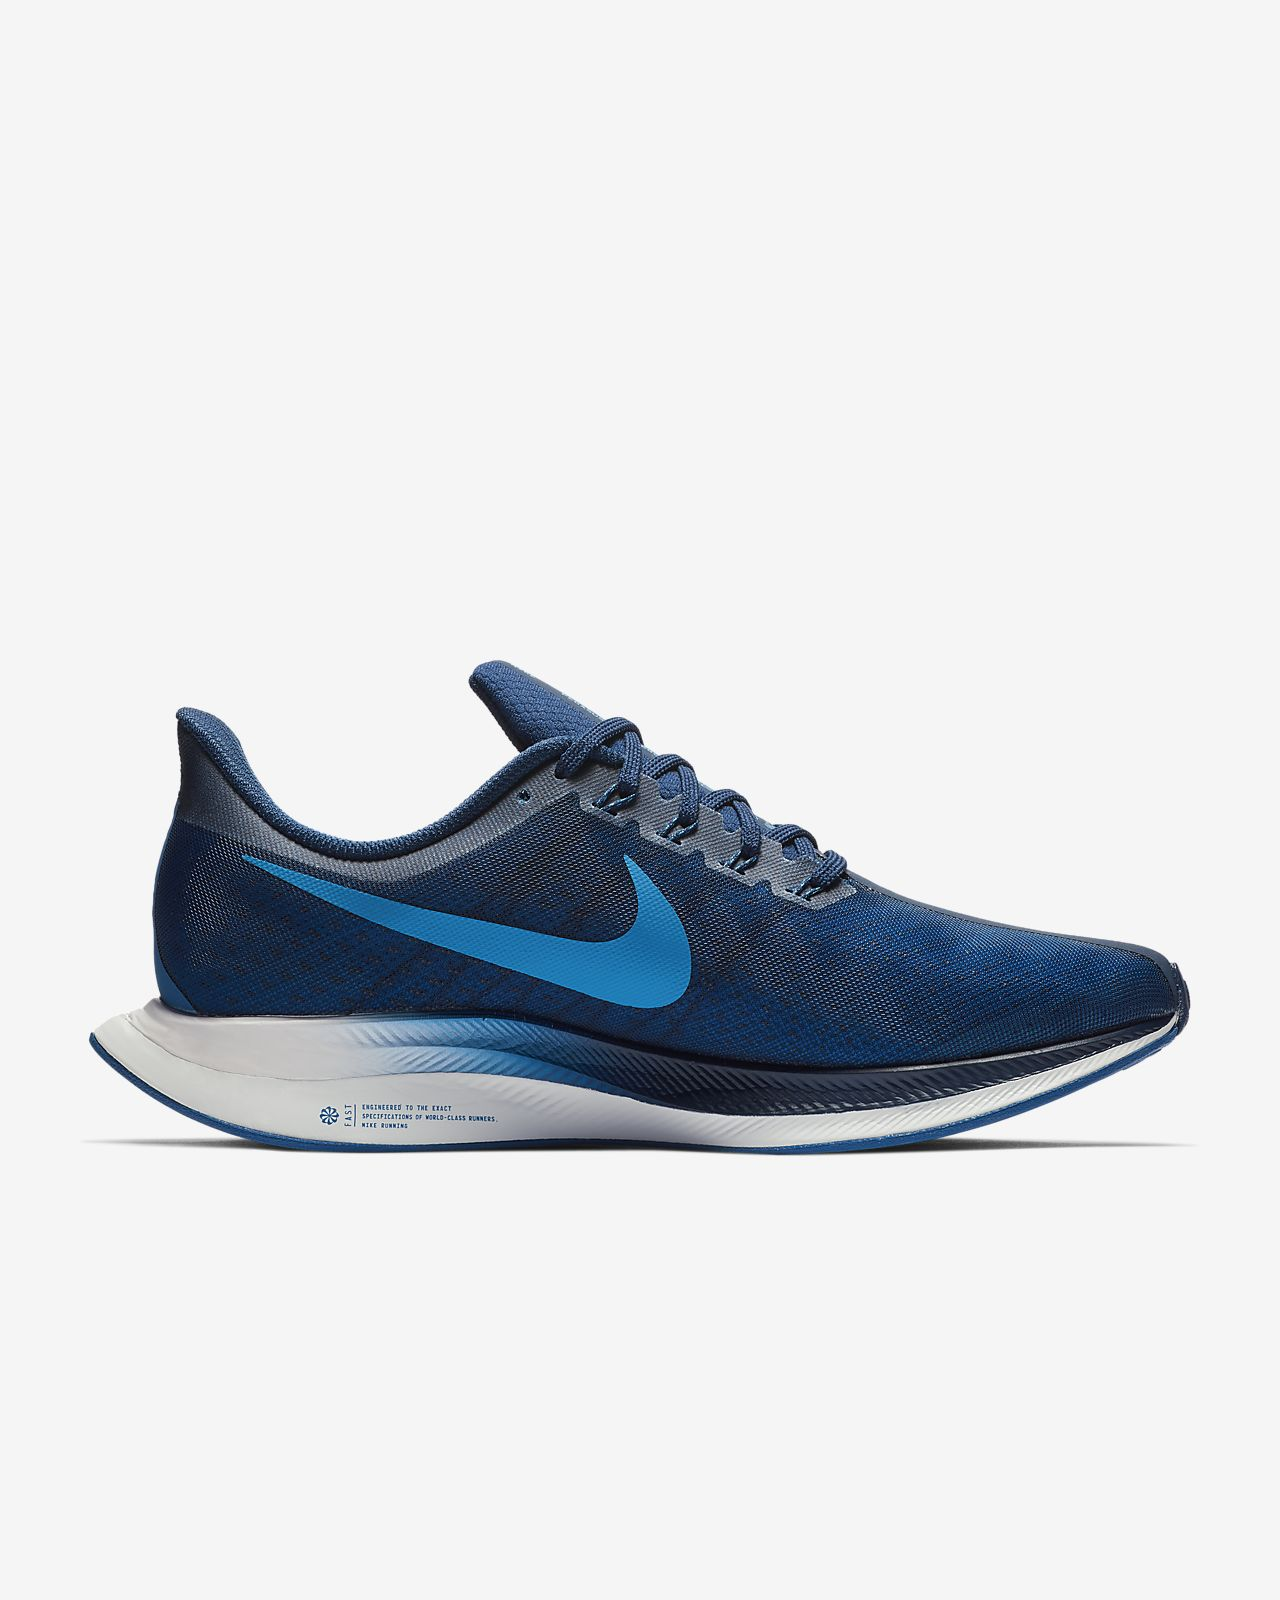 best service 111dd 07f64 Low Resolution Nike Zoom Pegasus Turbo Men s Running Shoe Nike Zoom Pegasus  Turbo Men s Running Shoe